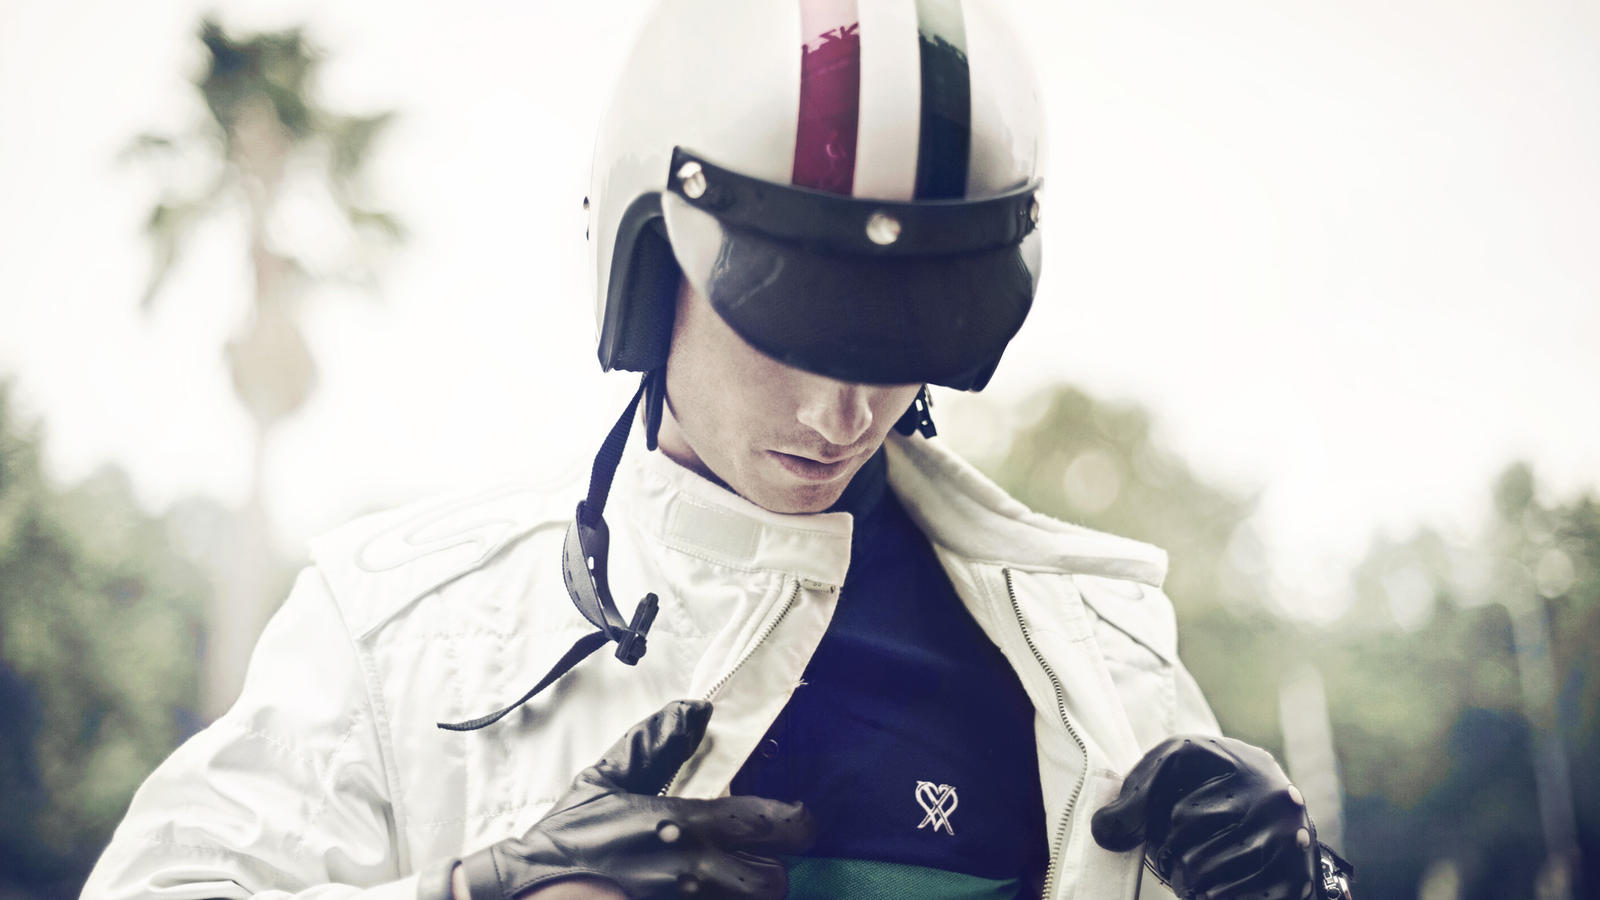 Cr7 Summer Collection Karting (2)